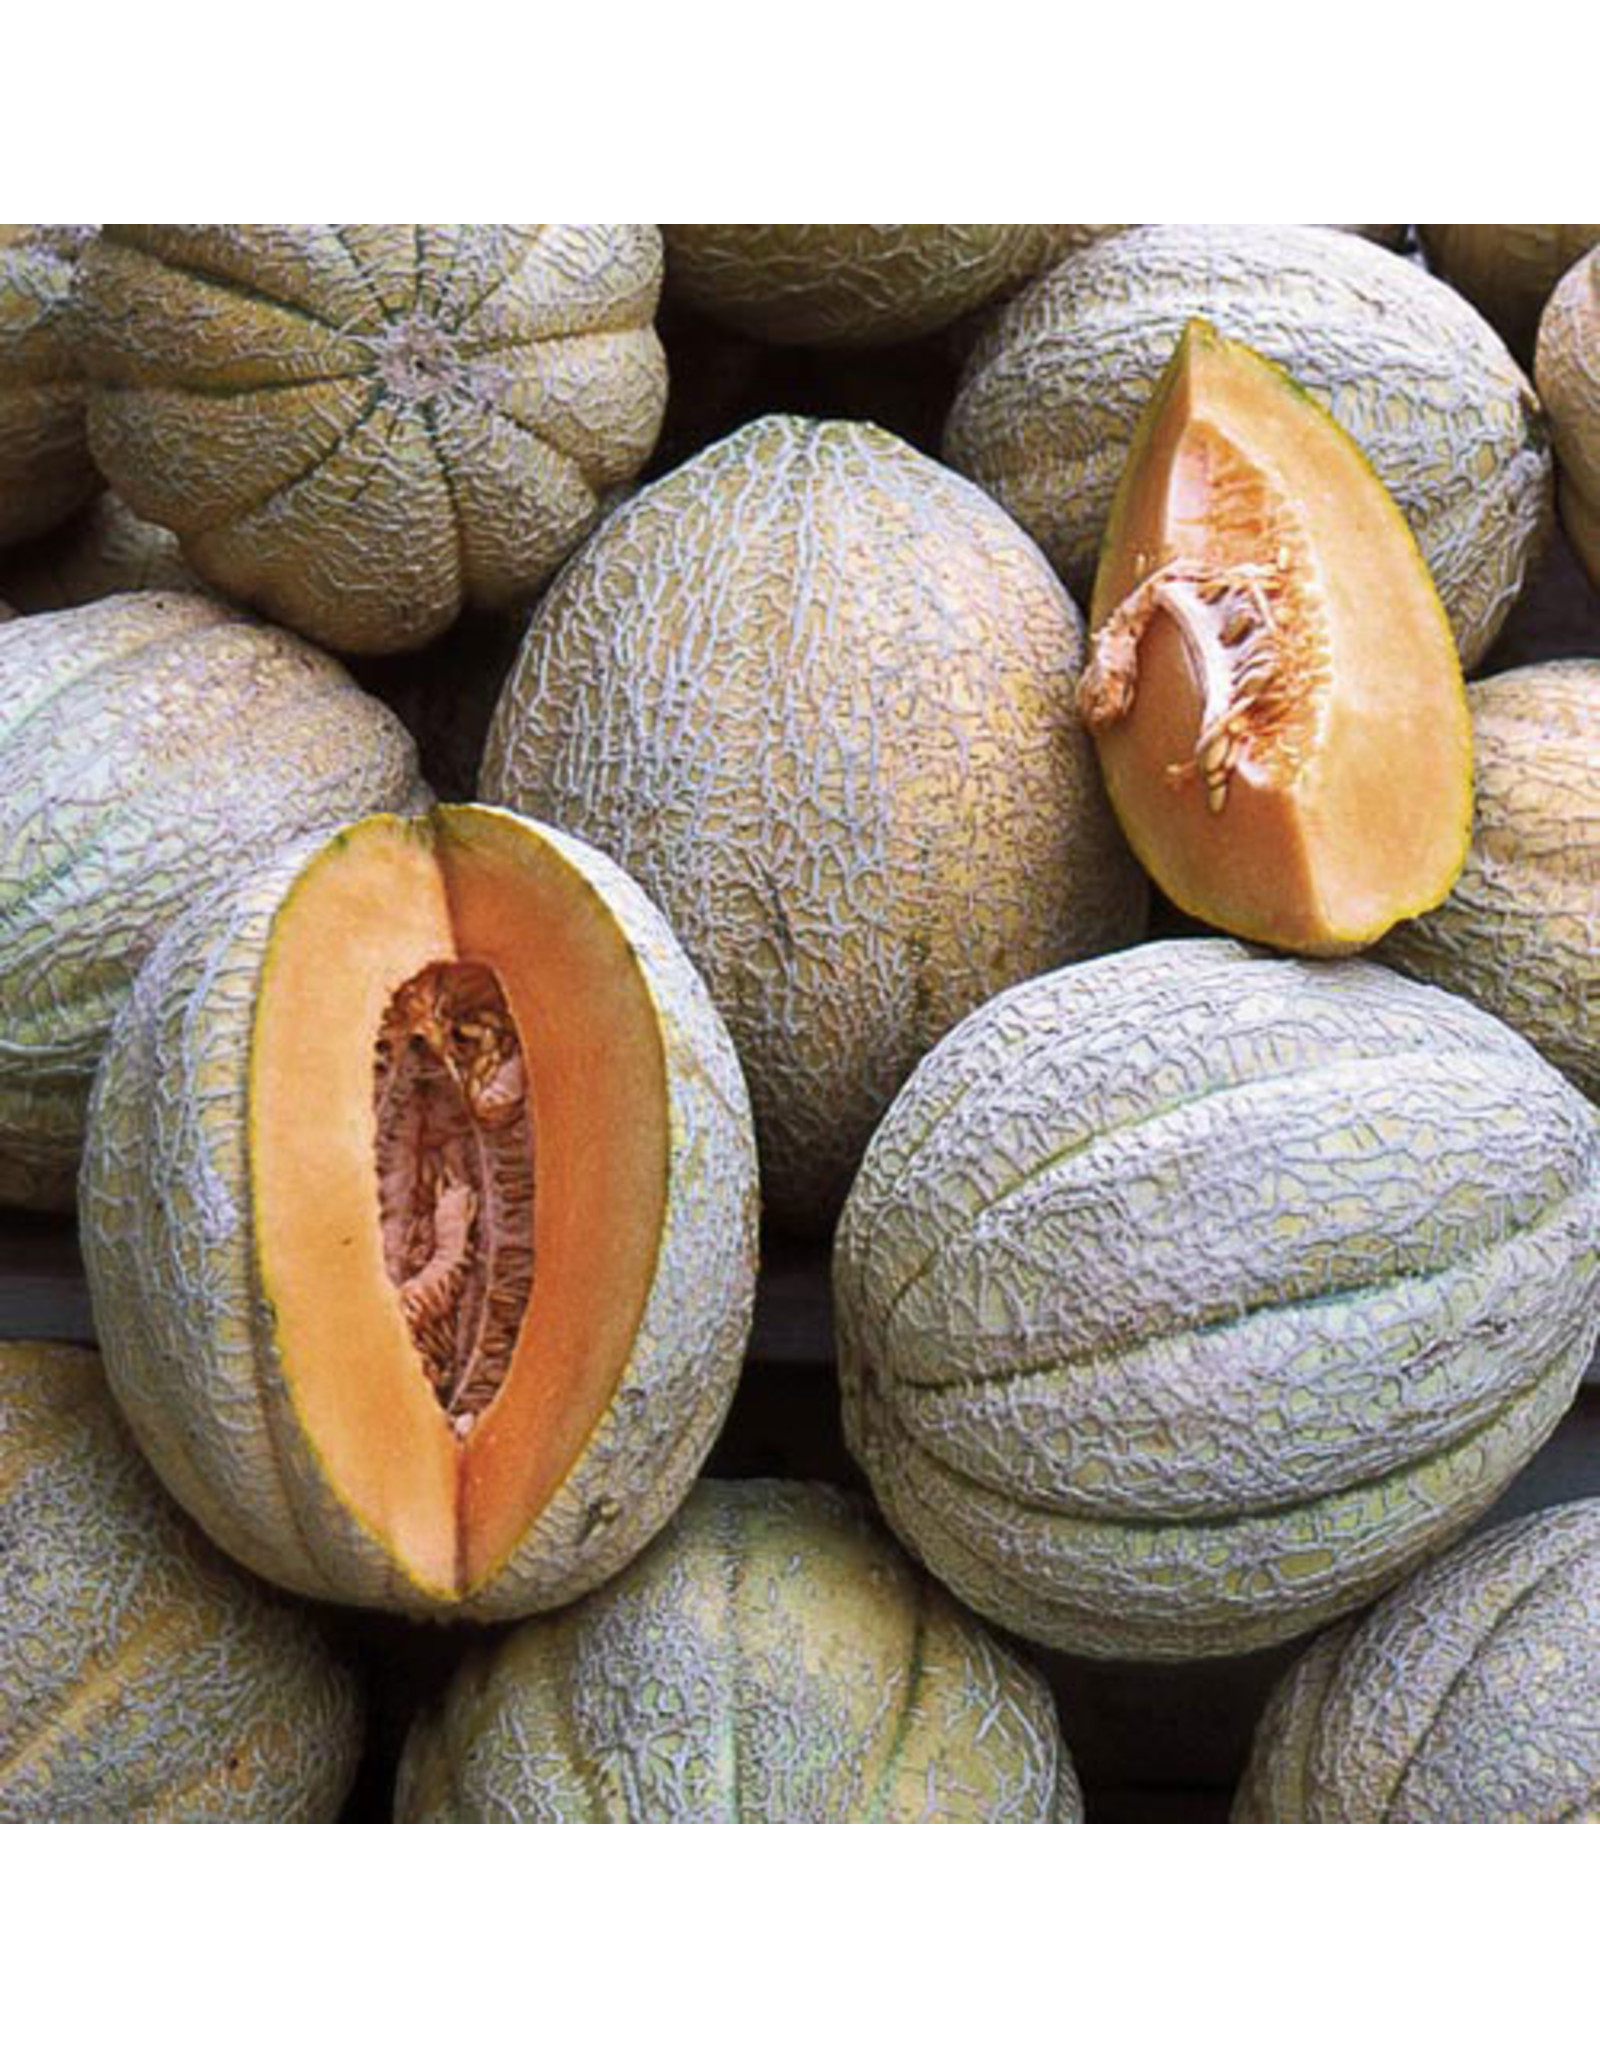 Seed Savers Melon - Pride of Wisconsin